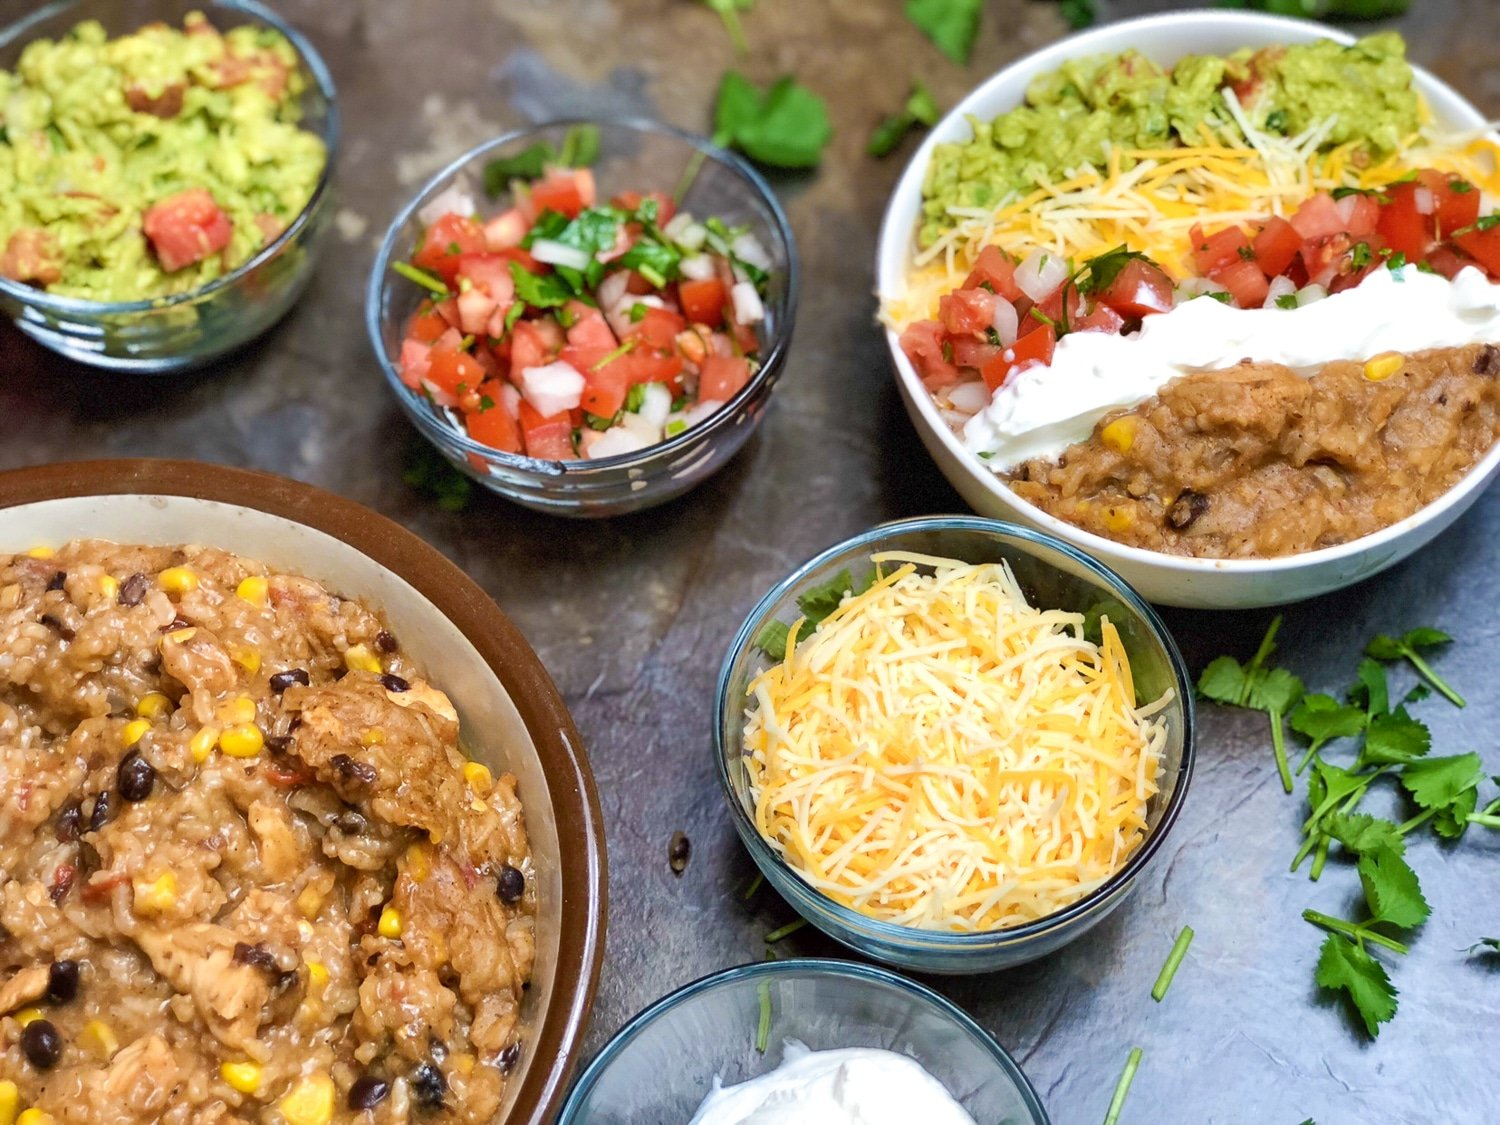 Today I am going to liven up your Taco Tuesday with this amazing Instant Pot Chicken Burrito Bowl. #easy #recipes #instantpot